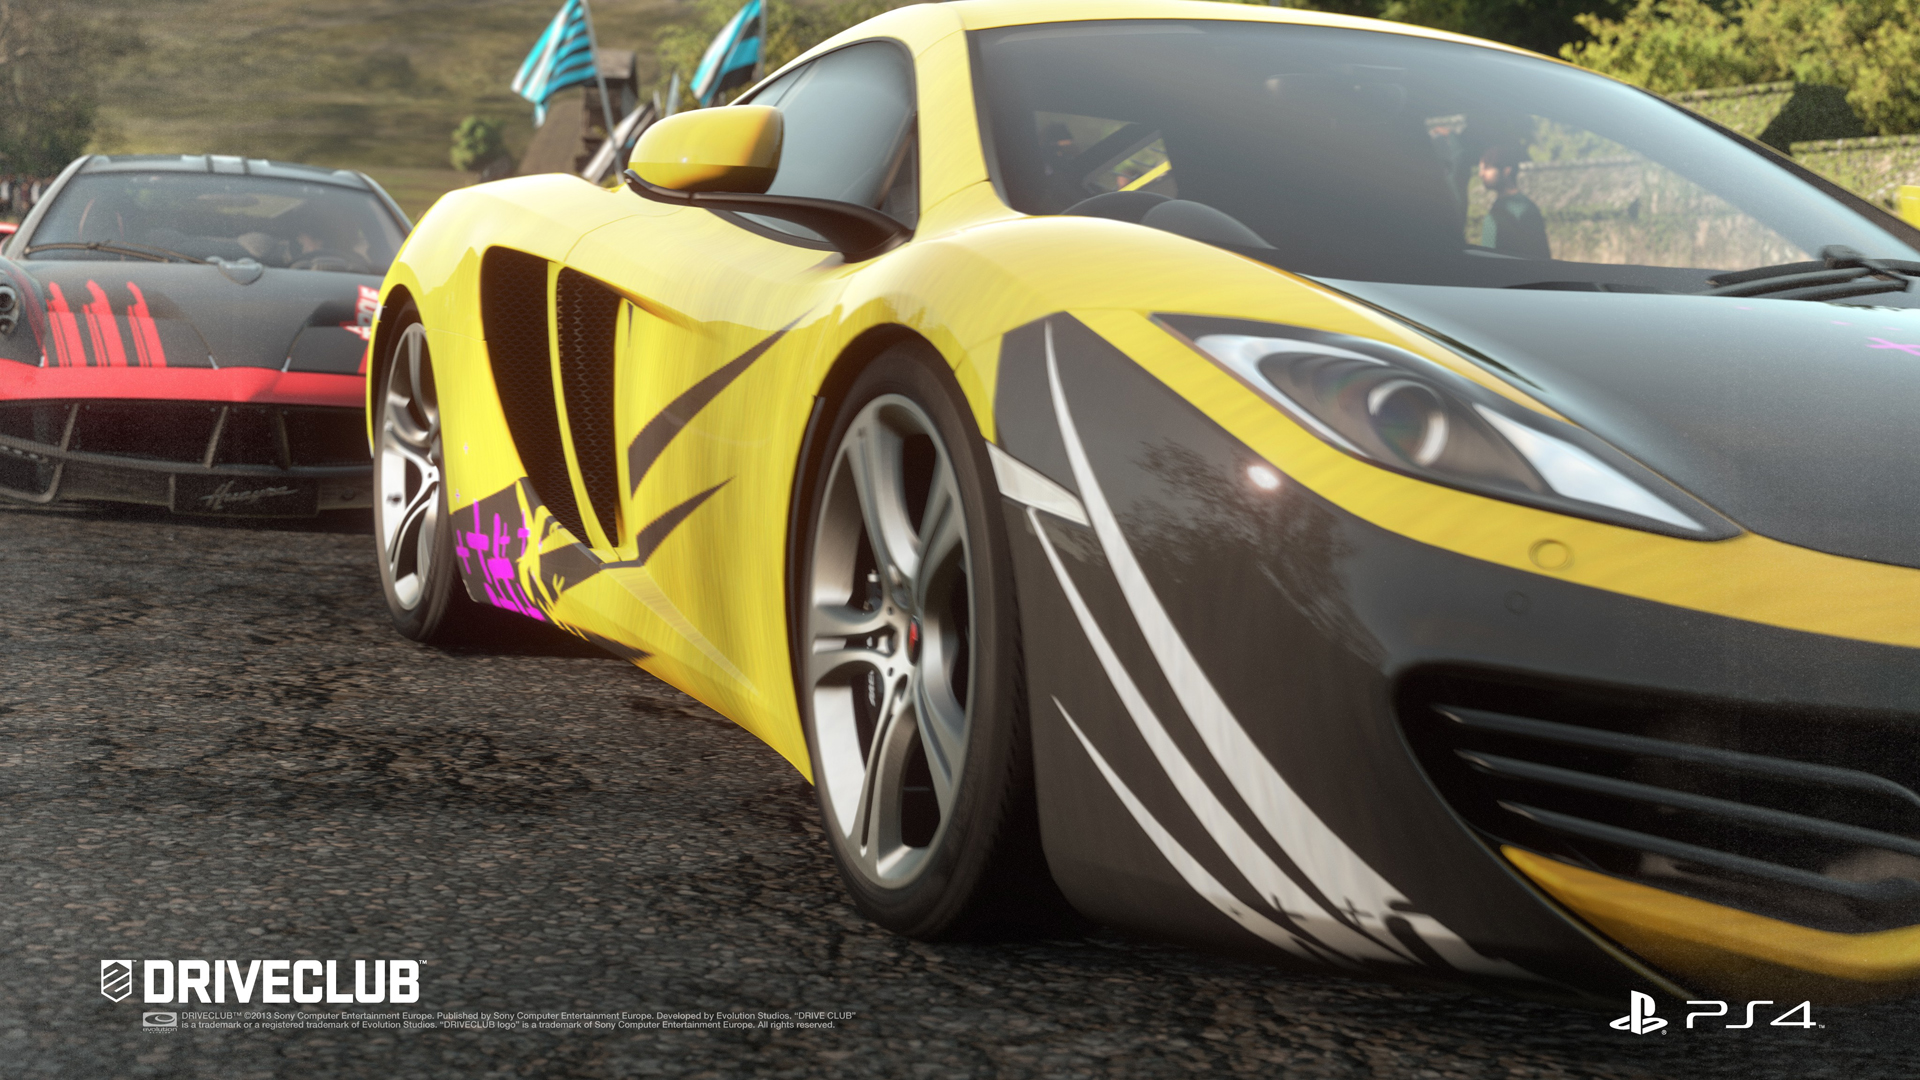 driveclub-3